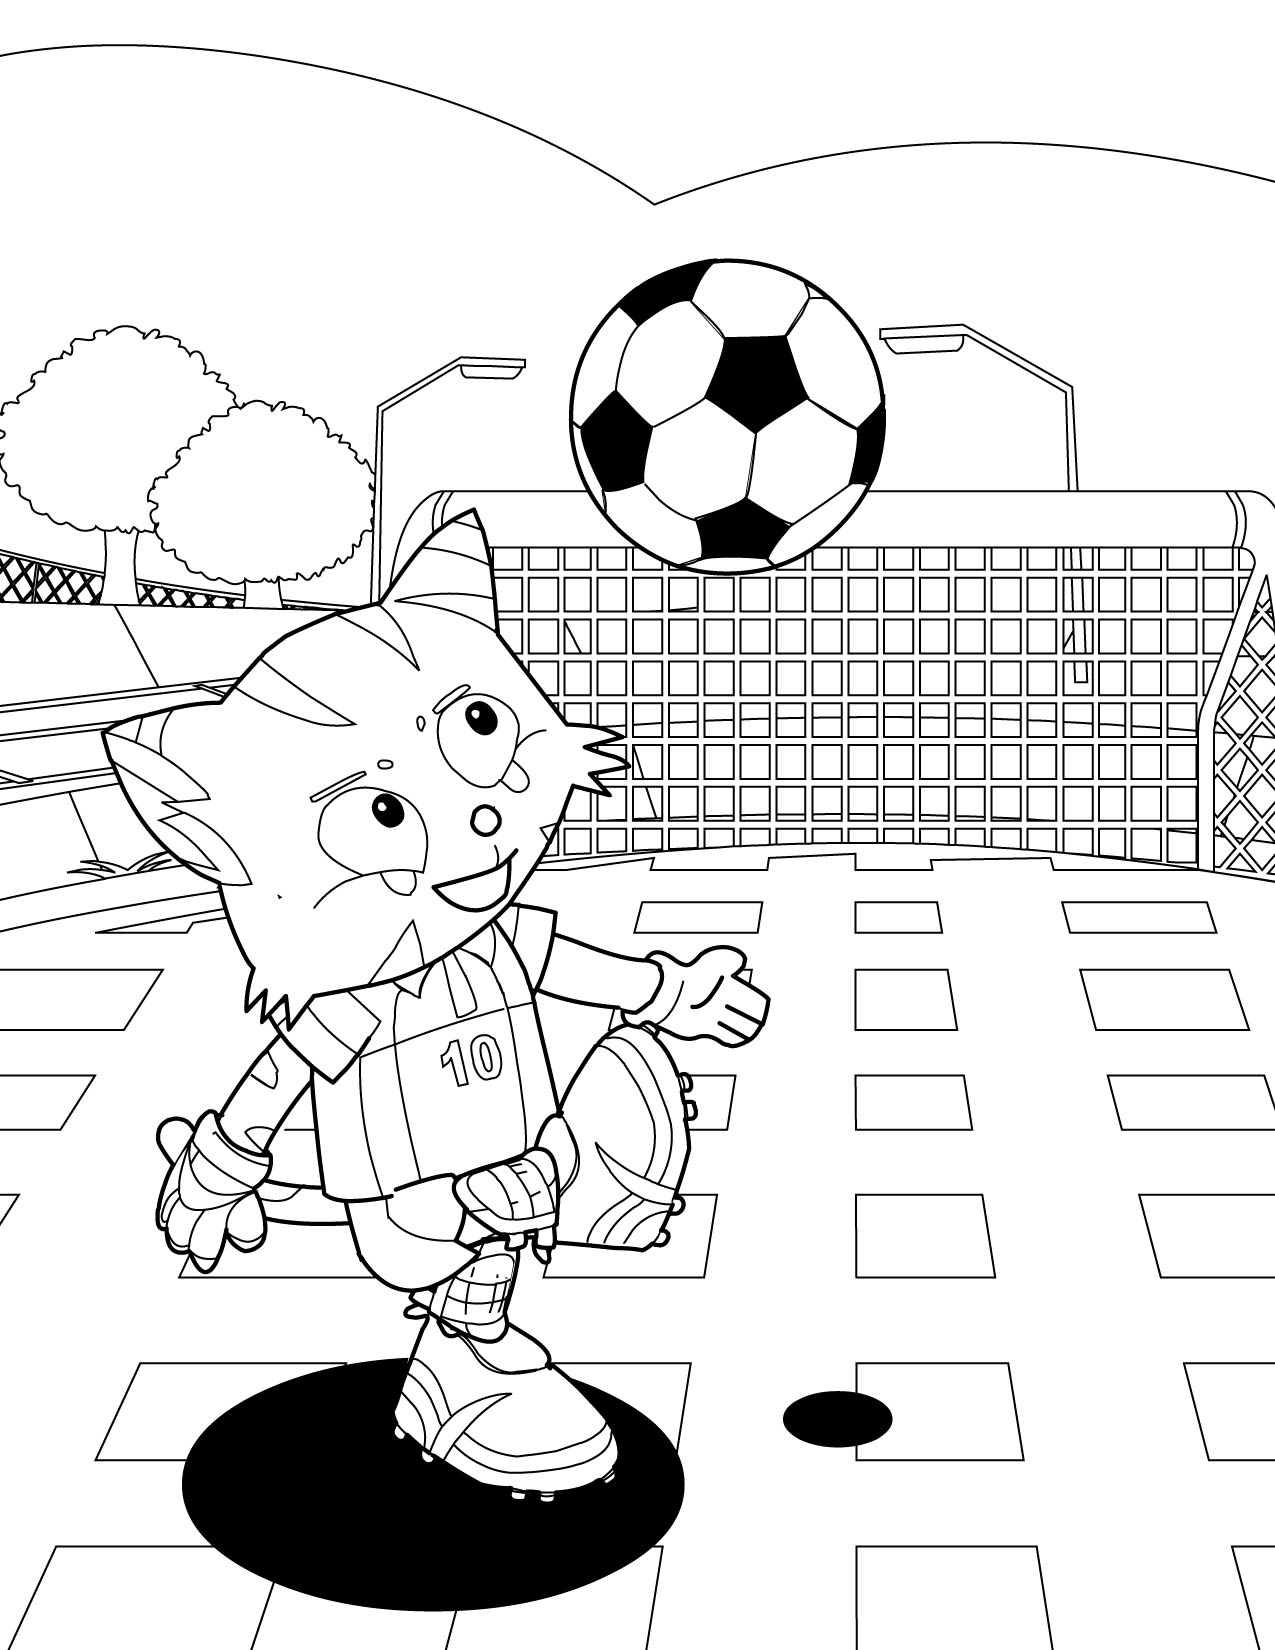 Soccer Coloring Pages (4) | Coloring Kids